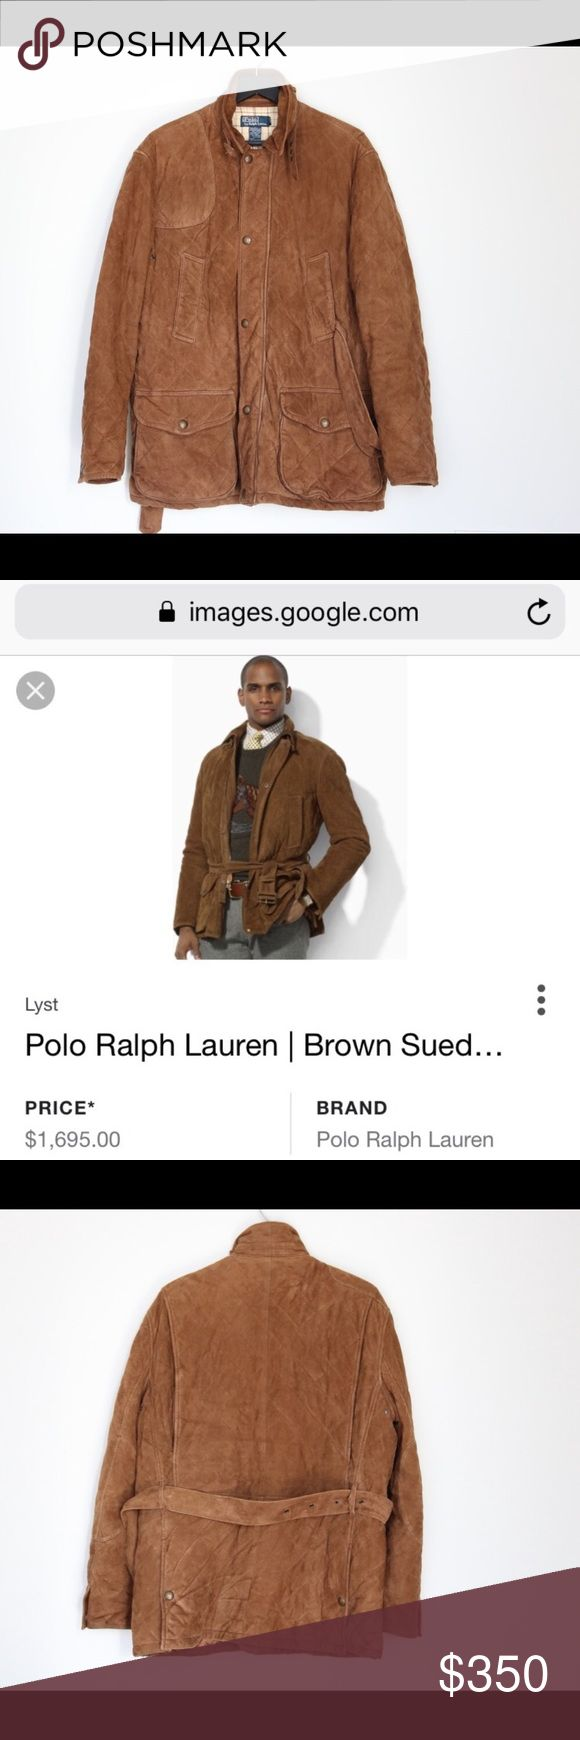 RALPH LAUREN SUEDE QUILTED COAT 💯% leather/suede.  It's super thick and heavy.  Bought from Ralph Lauren website in 2013.  Color is as picture 2 shows. Polo by Ralph Lauren Jackets & Coats